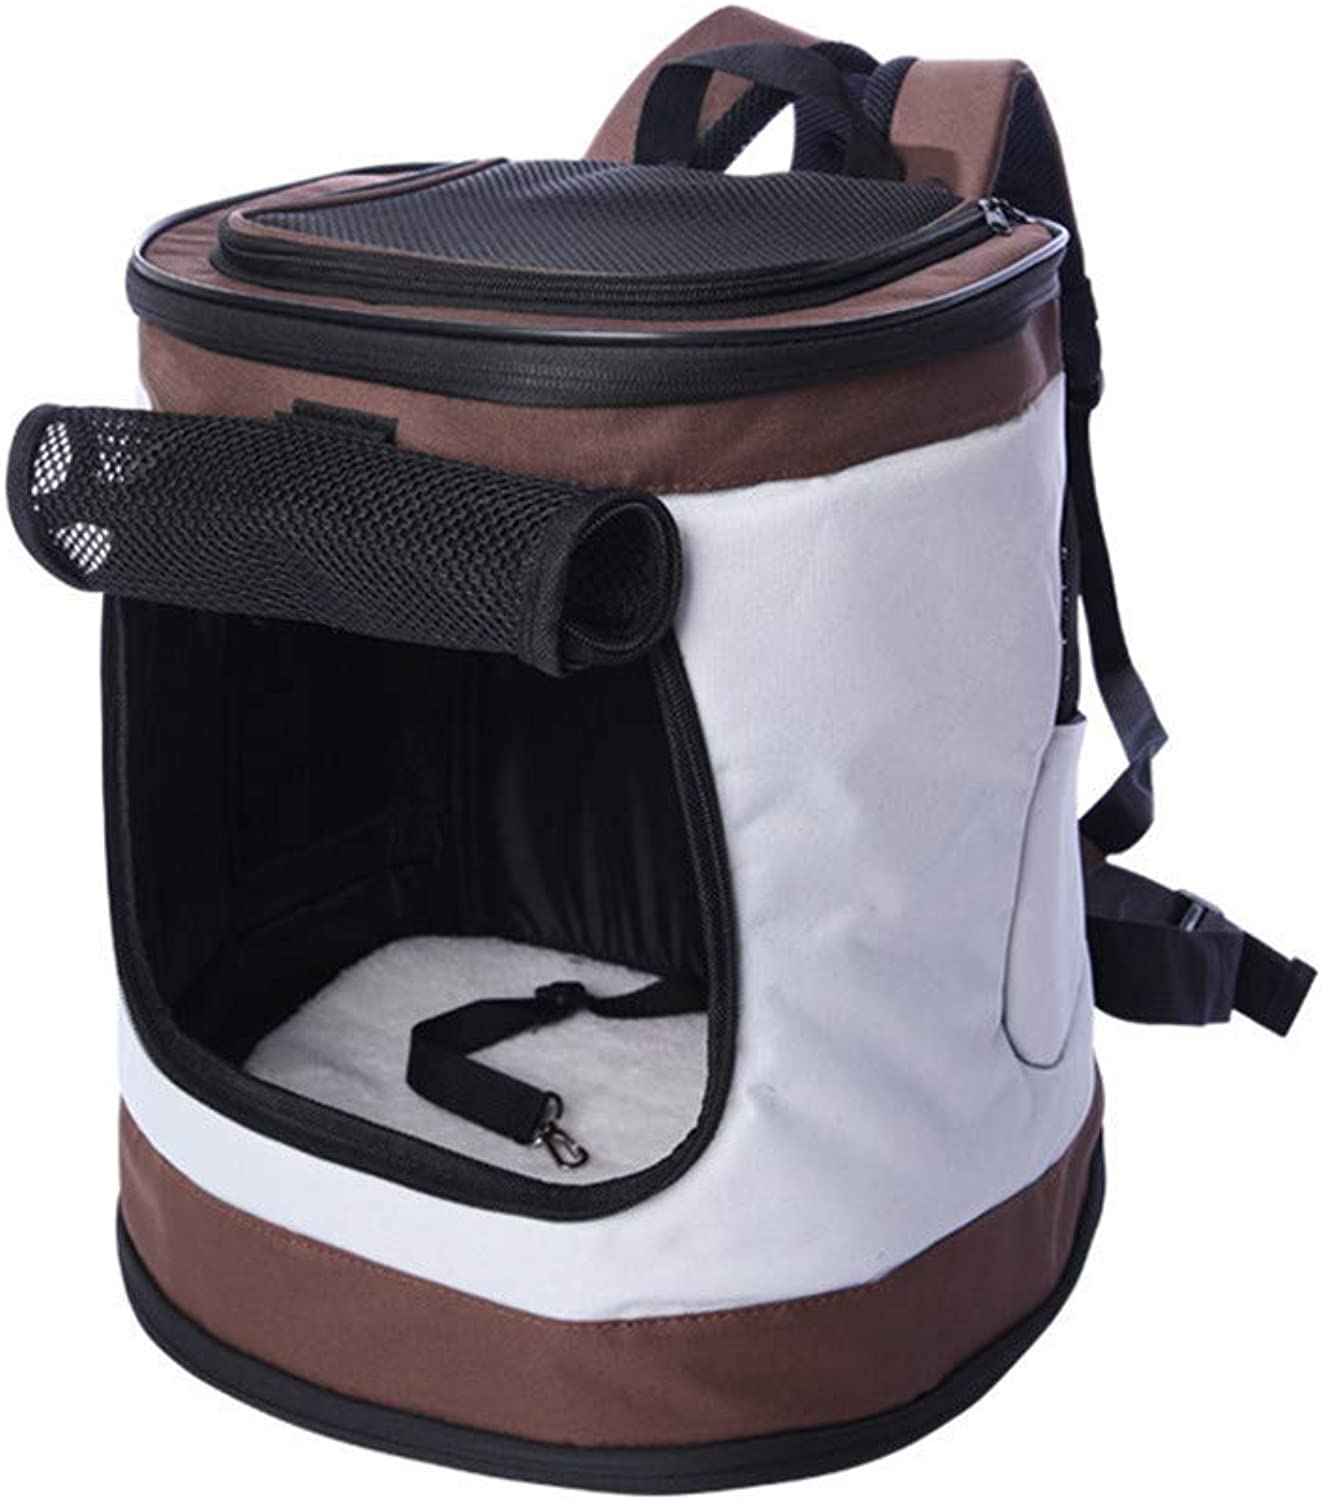 Pet Bag Outdoor Bucket Bag Portable  Breathable and Easy to Store ,for Cats and Puppies, Designed for Travel, Hiking, Walking & Outdoor Use